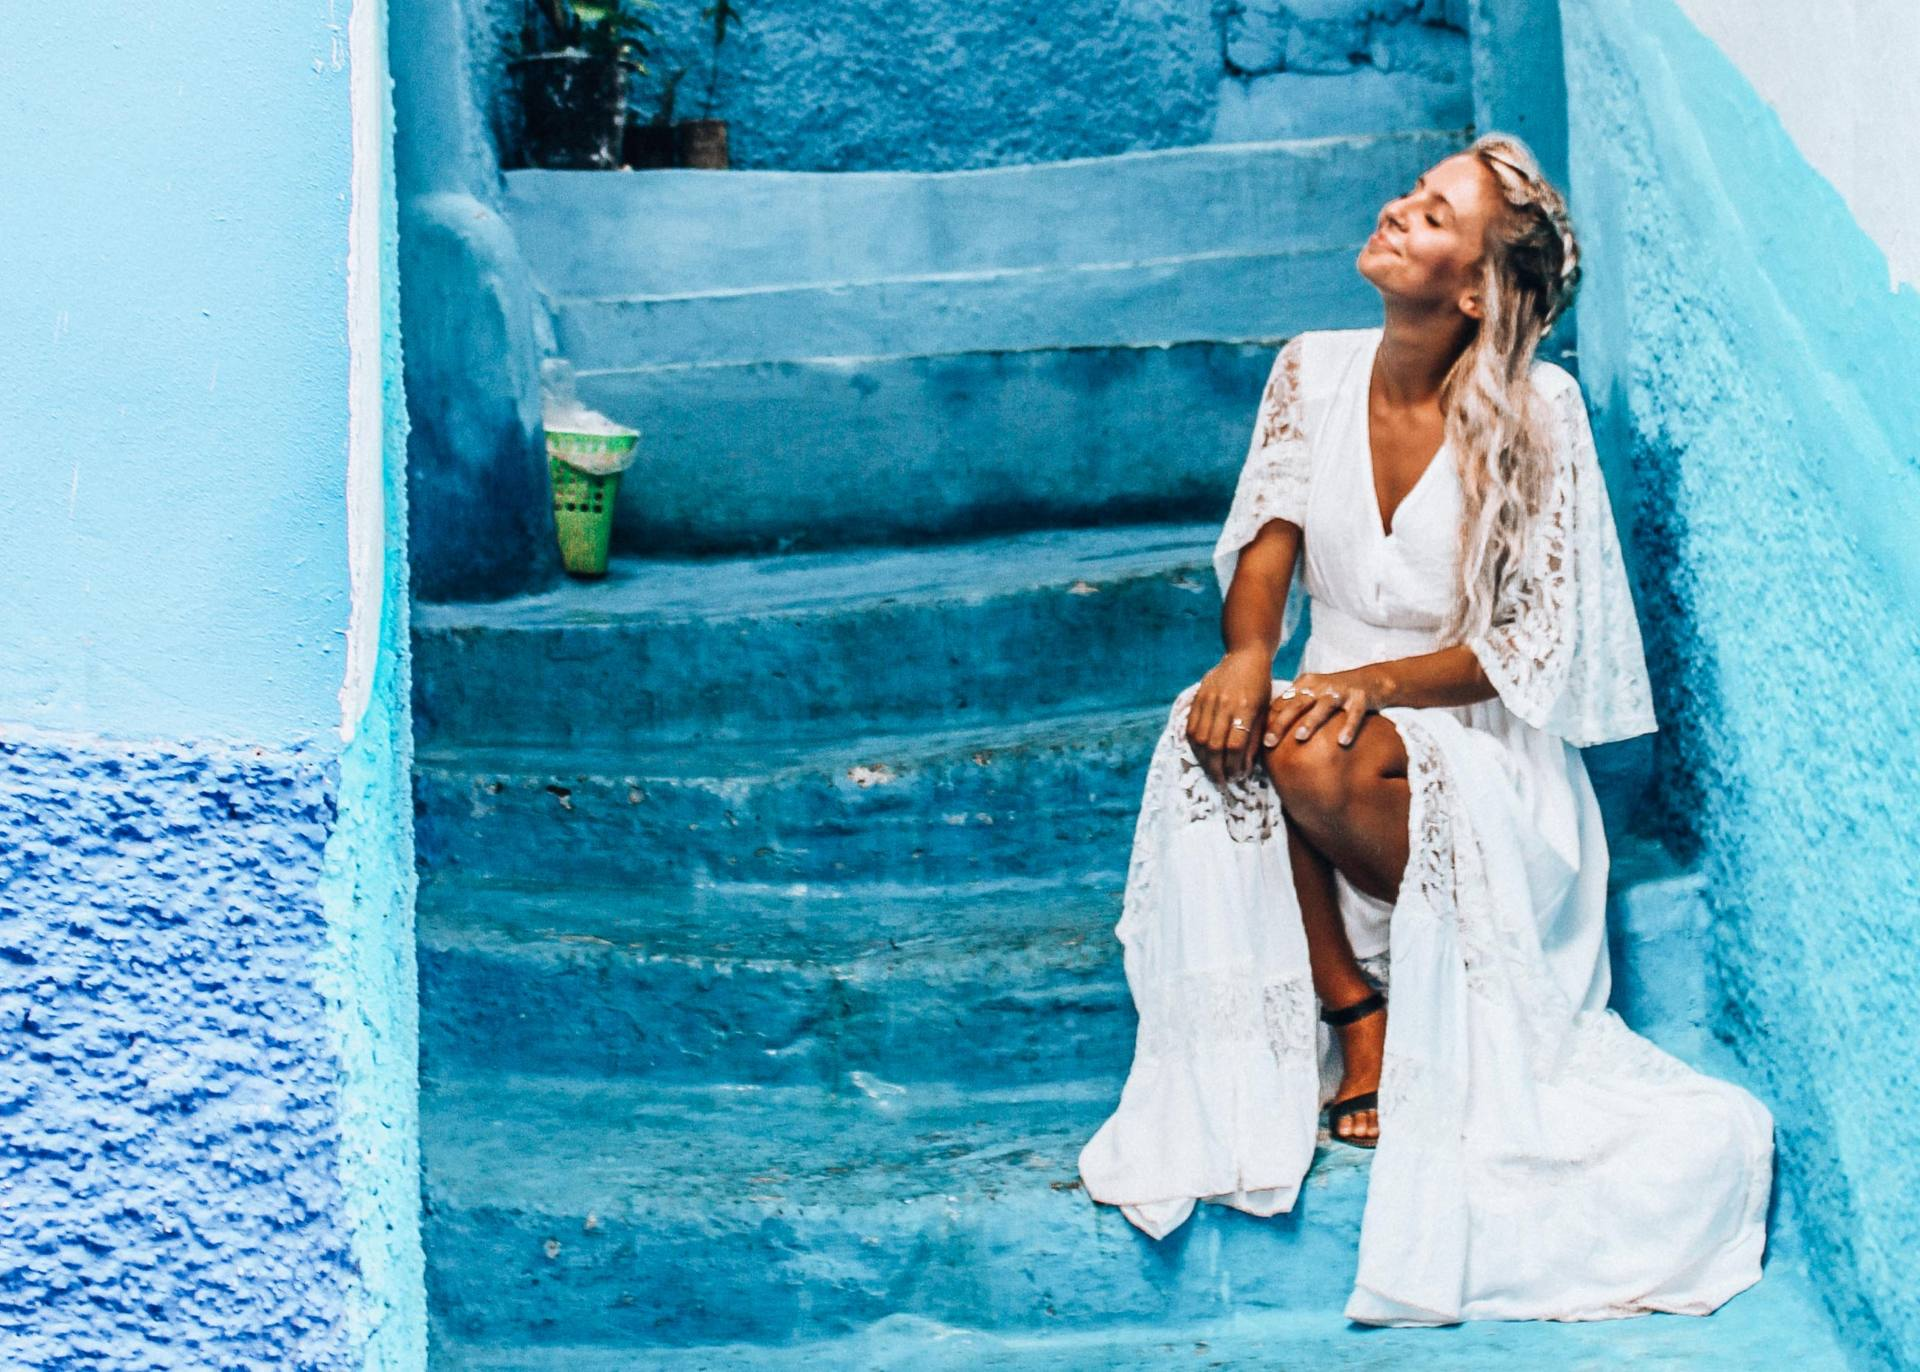 Chefchaouen Guide – Travel in Morocco's Blue City